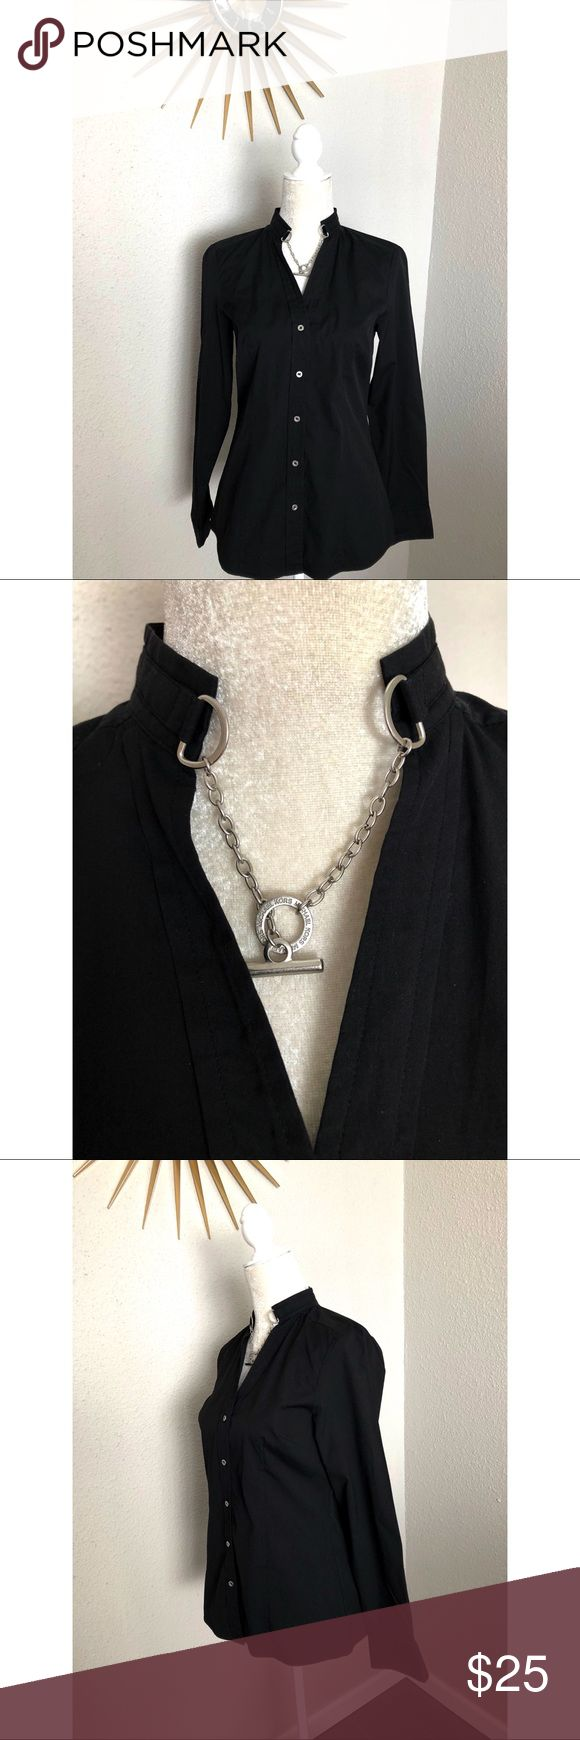 Michael Kors Black Button Down Women's Top w chain Beautiful Michael Kors button down blouse with decorative silver chain closure. This shirt is a size 6 and in great condition. Please contact me with any questions. Michael Kors Tops